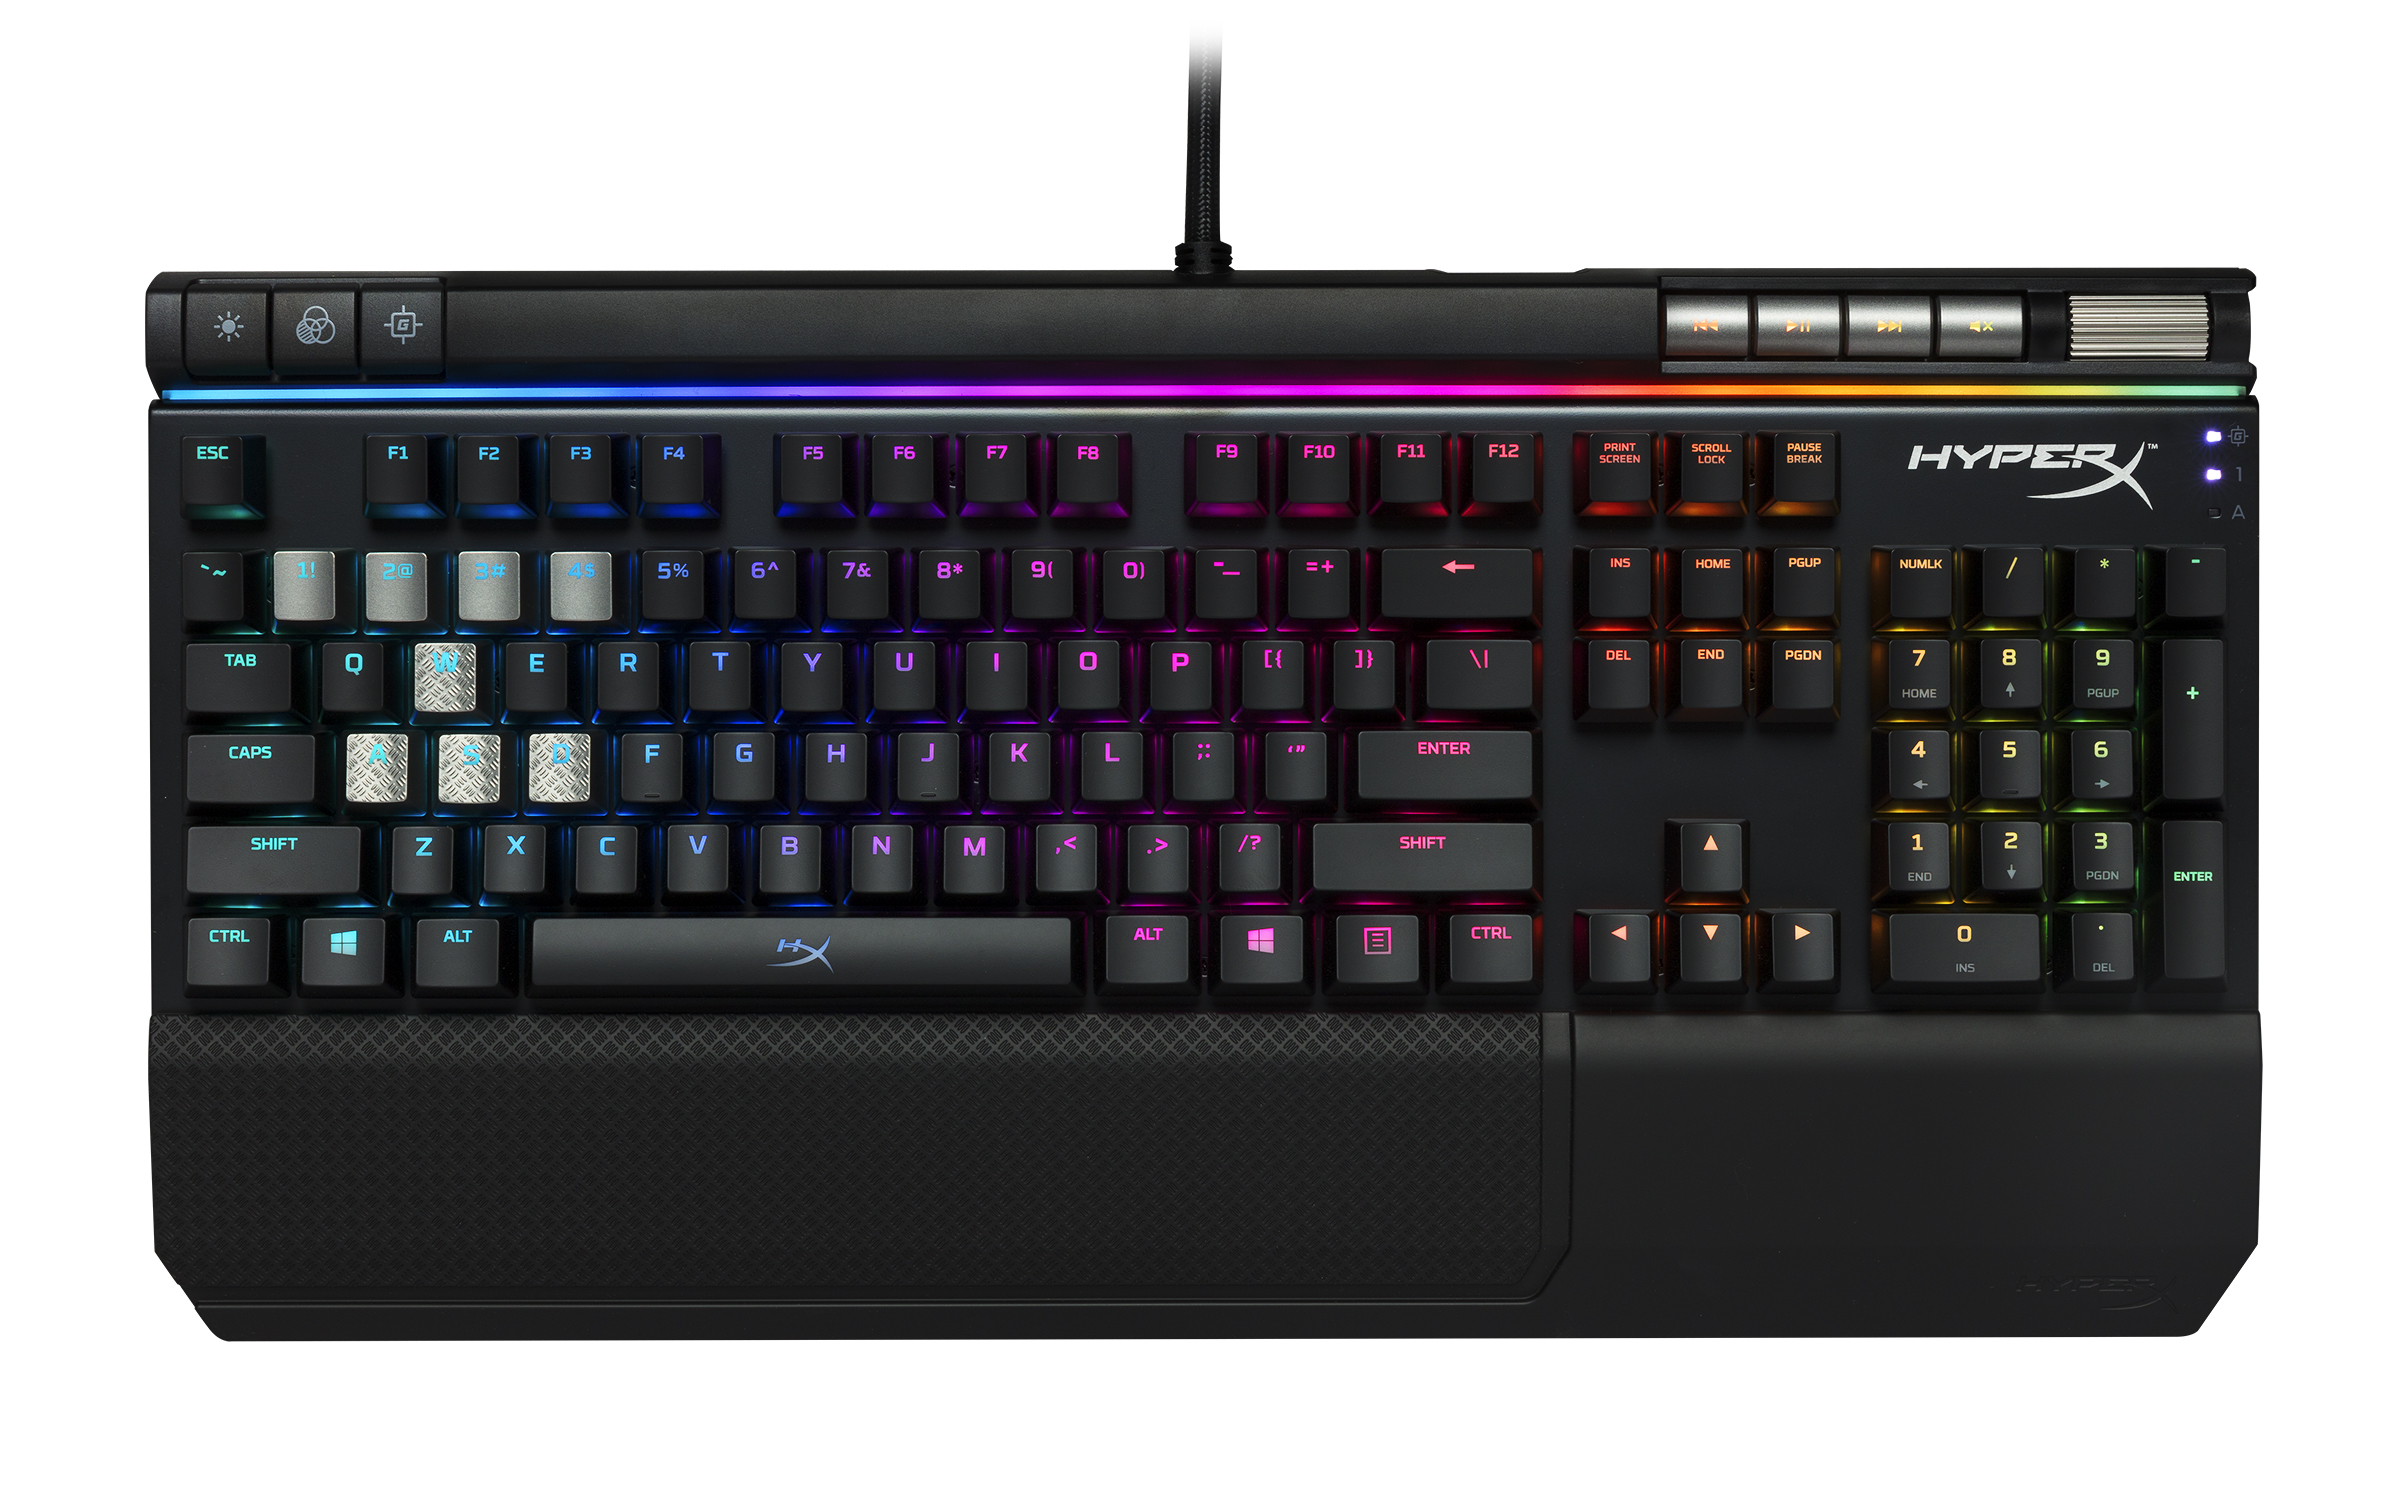 HyperX Alloy Elite RGB Keyboard_Image 3